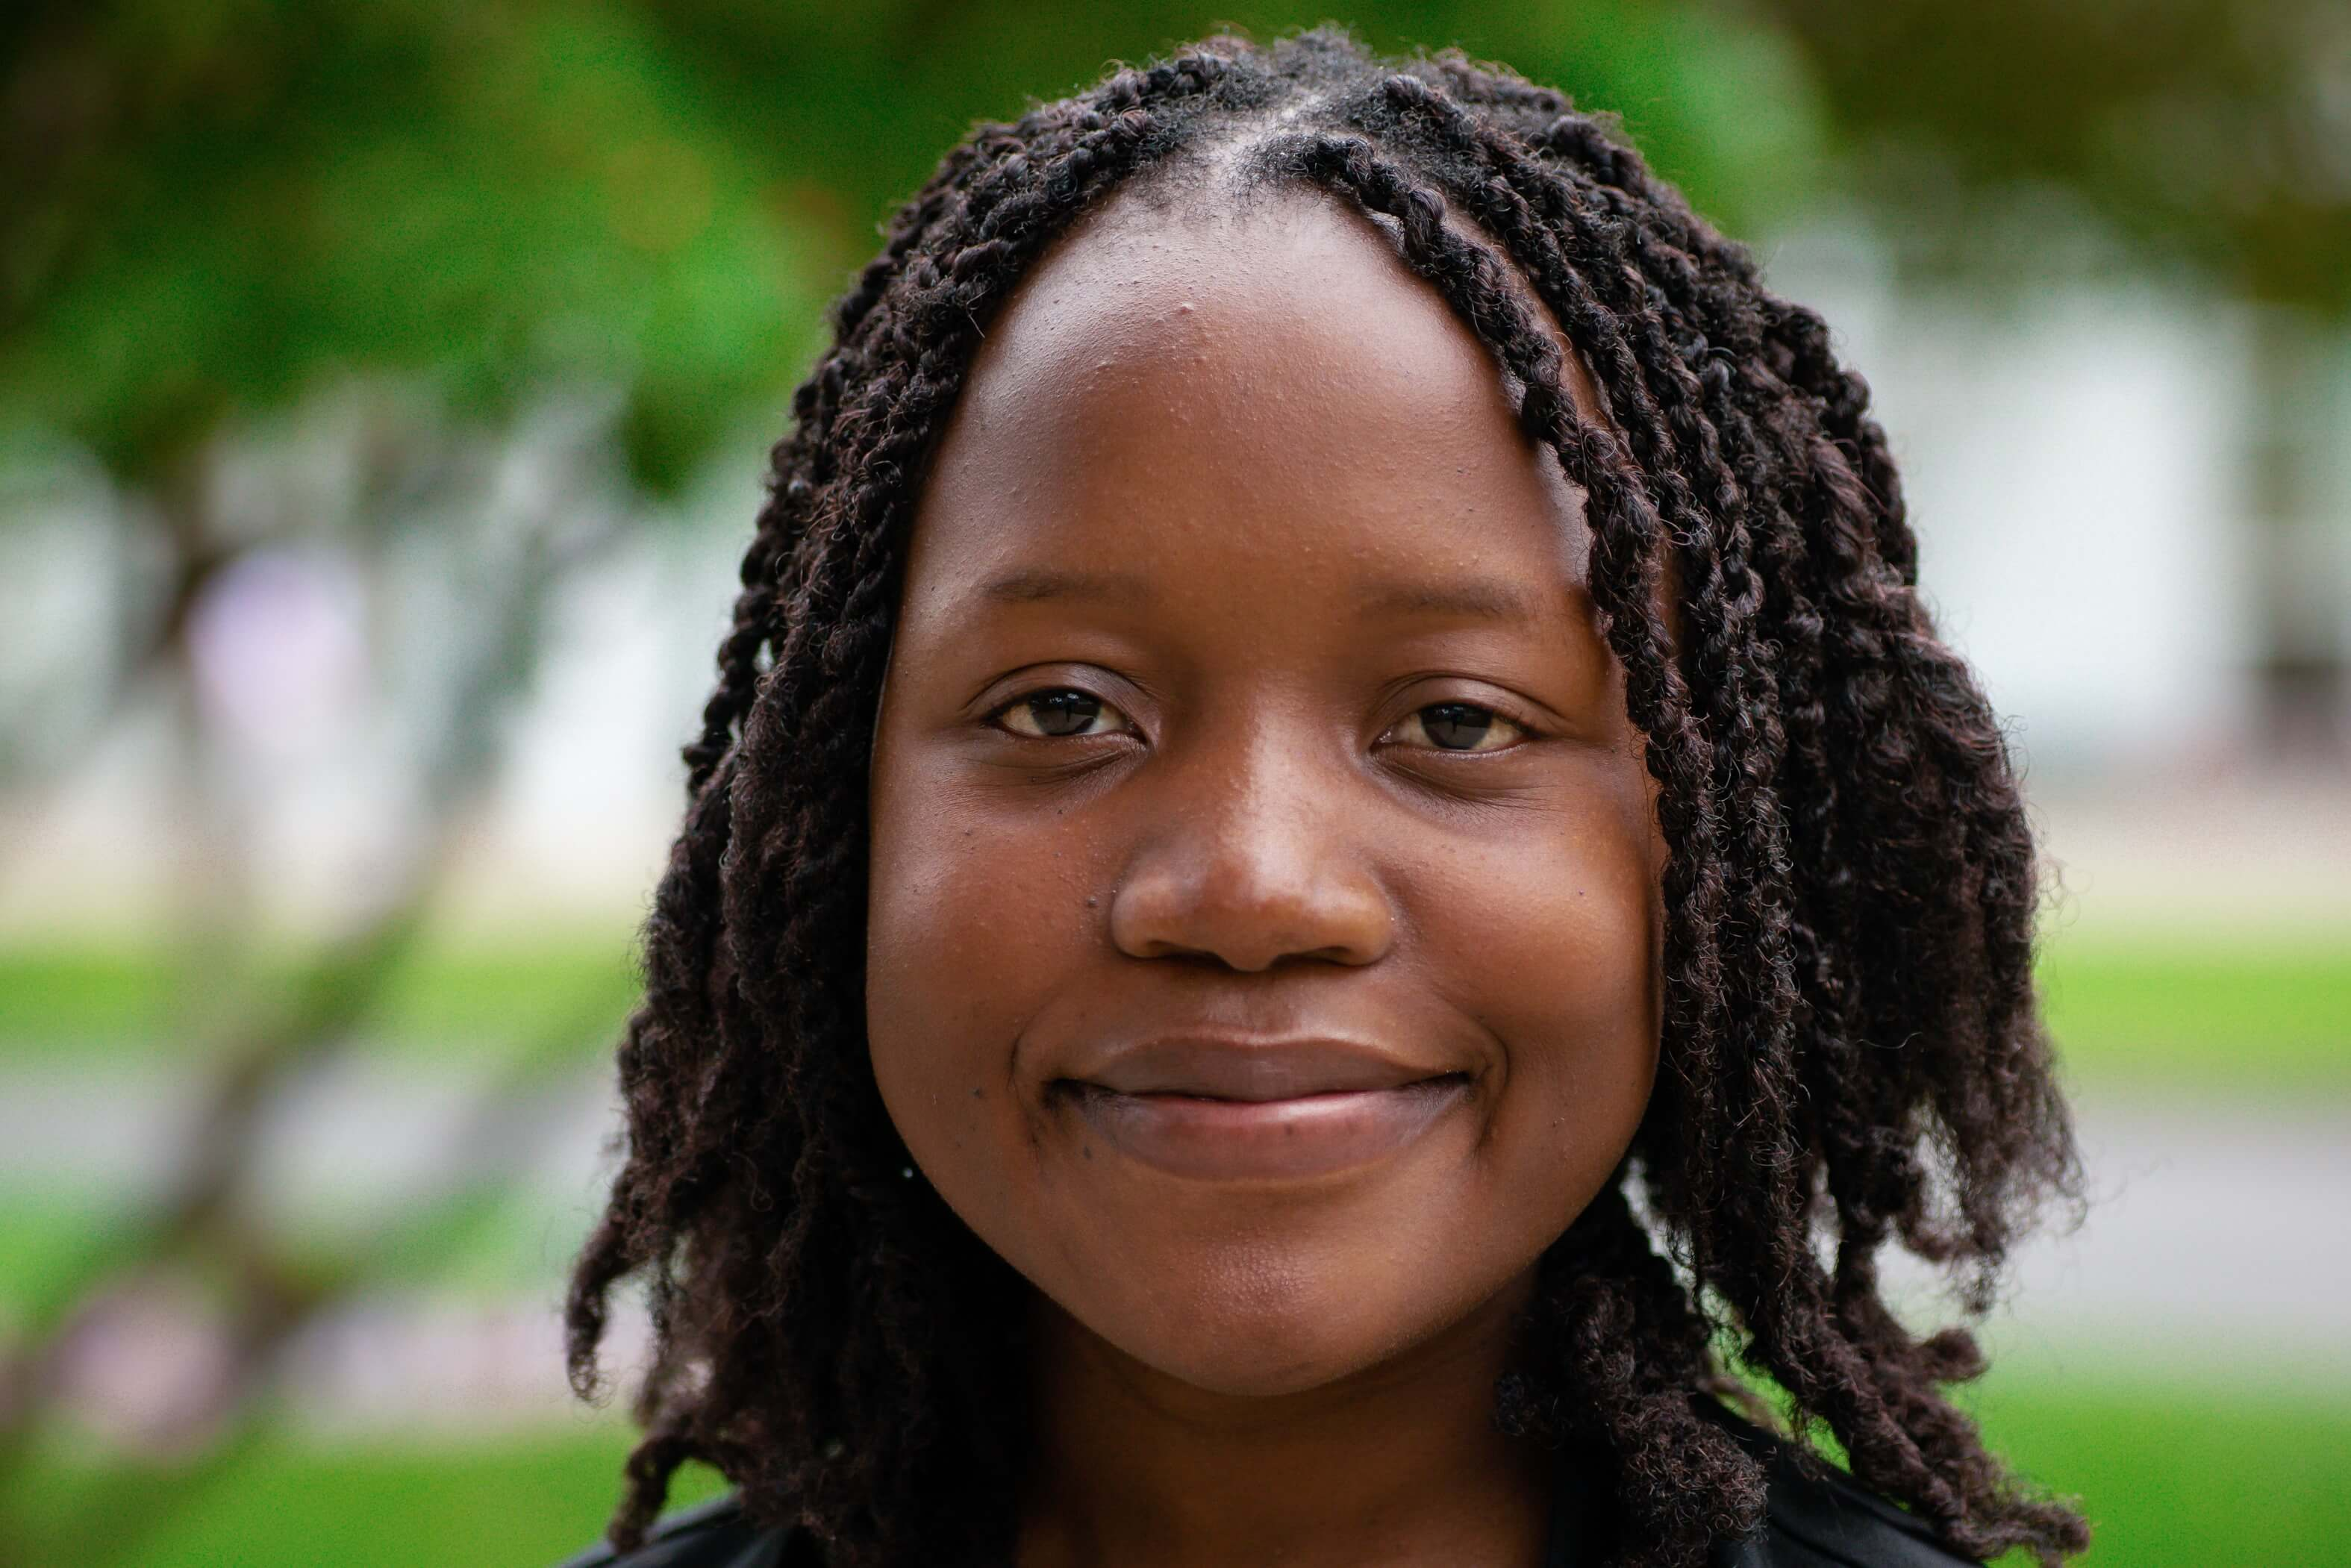 The Zimbabwean who won a fellowship to pursue a master's degree in the US